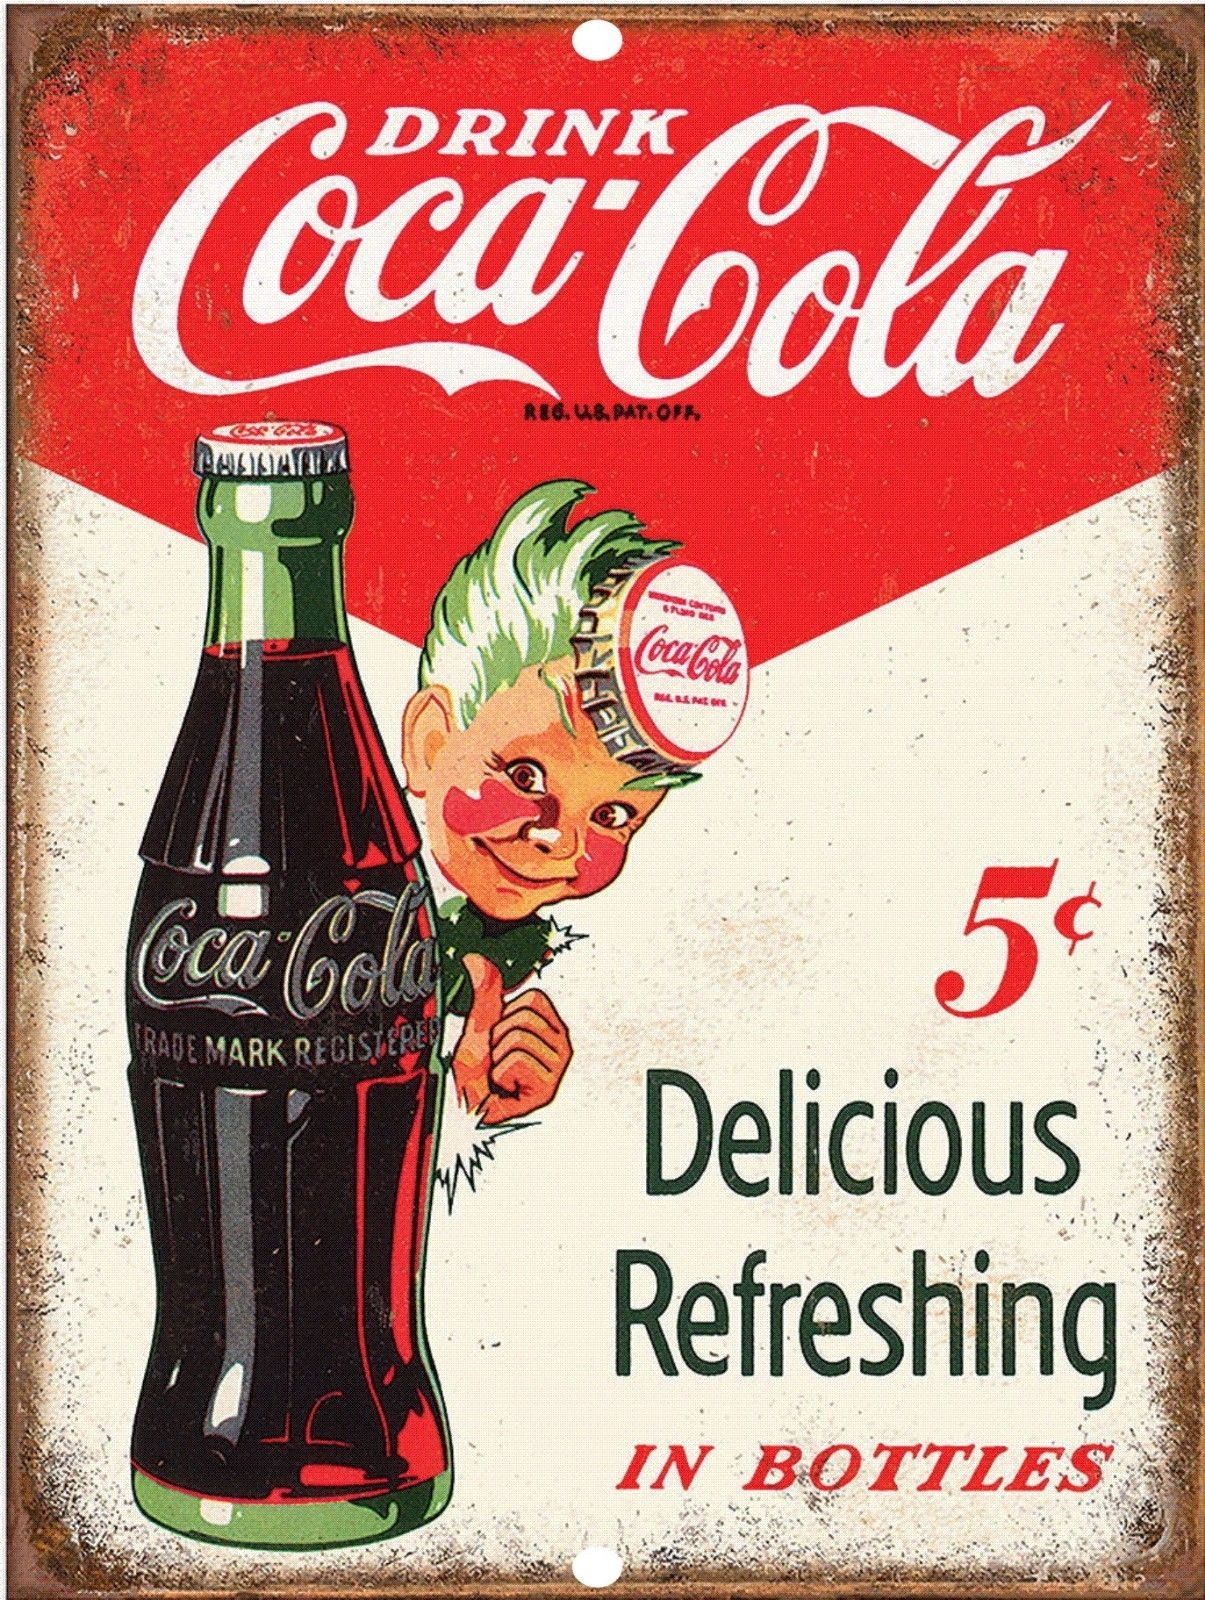 Cuadros De Coca Cola Vintage Retro Style Drink Coca Cola 5 Cents Reproduction